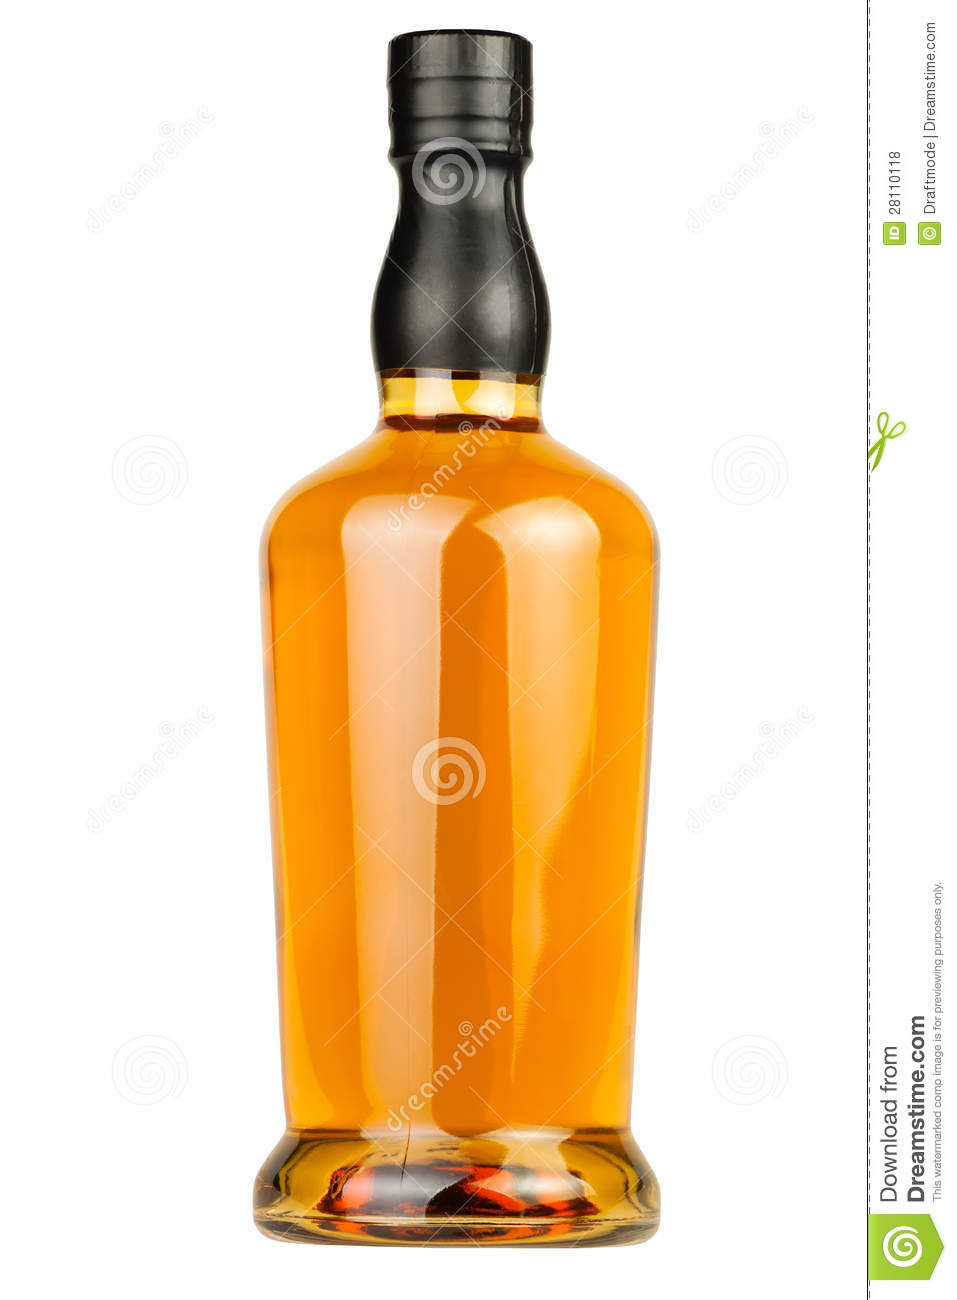 Whisky clipart Whiskey Free Whiskey cliparts Bottle